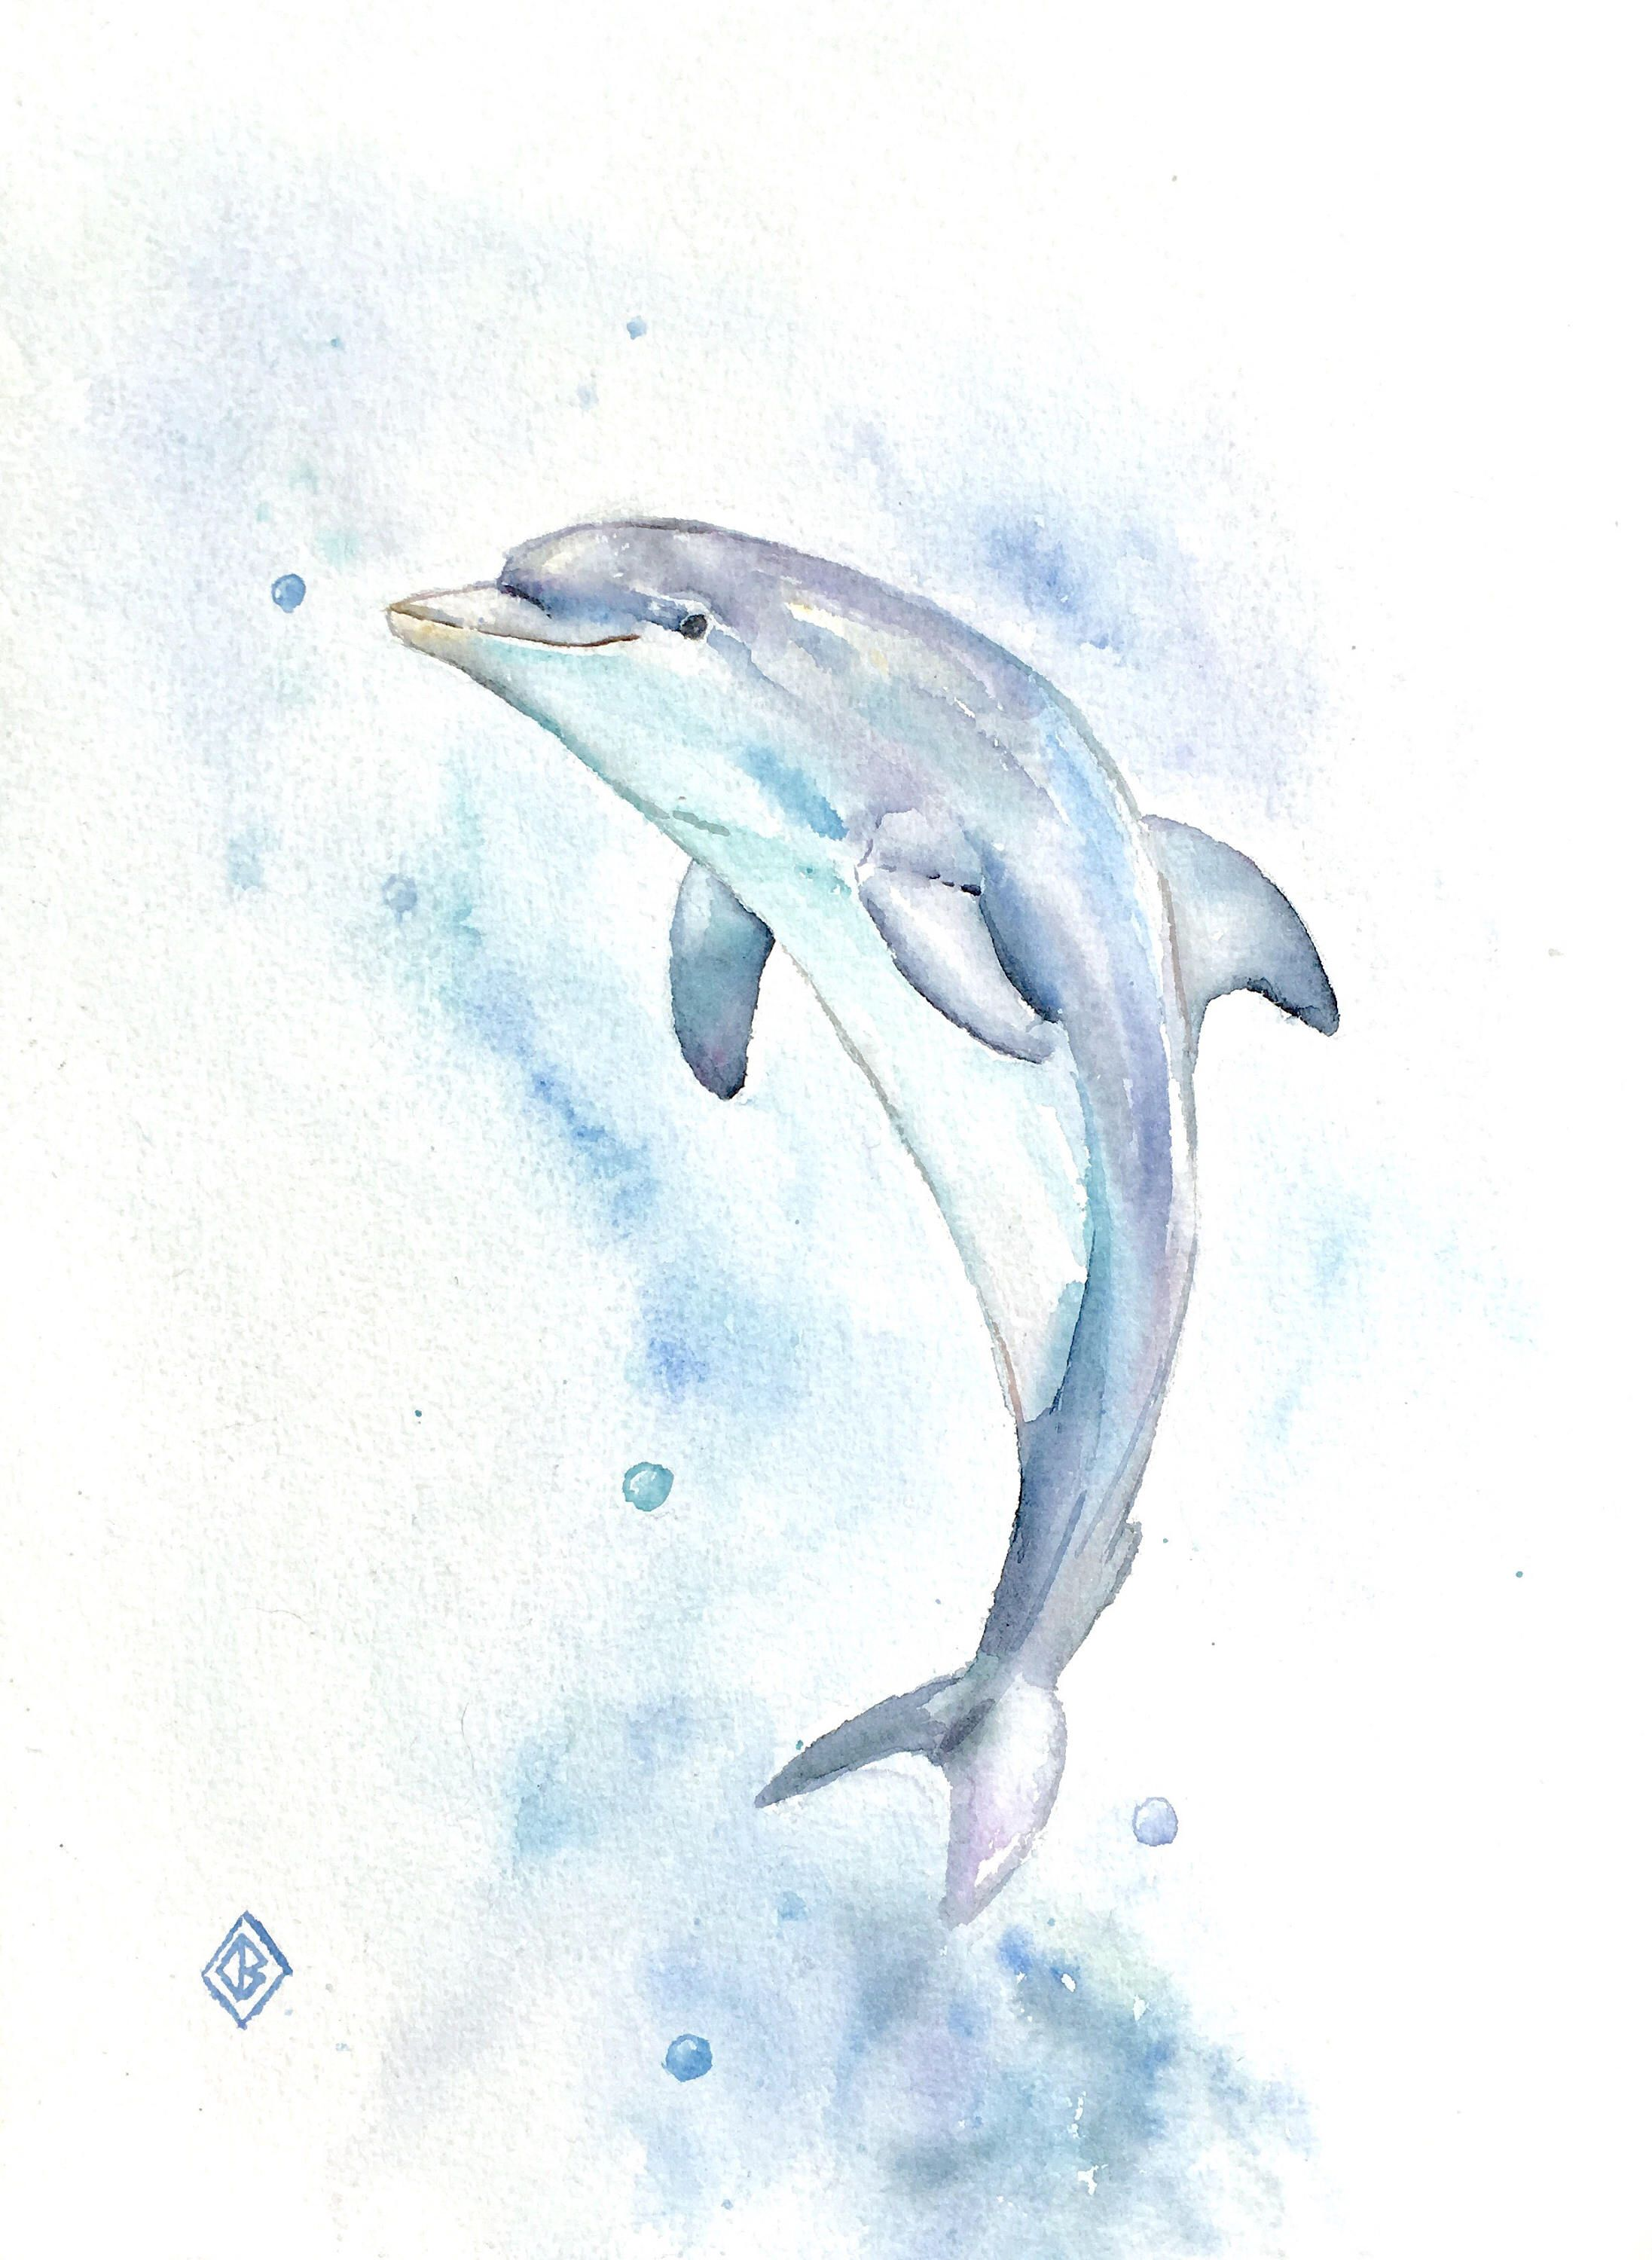 Dolphin 9x12 Original Watercolor Painting Cute Nature Art Ocean Sea Life Blue Turquoise Underwater Impre Dolphin Drawing Dolphin Art Dolphin Painting